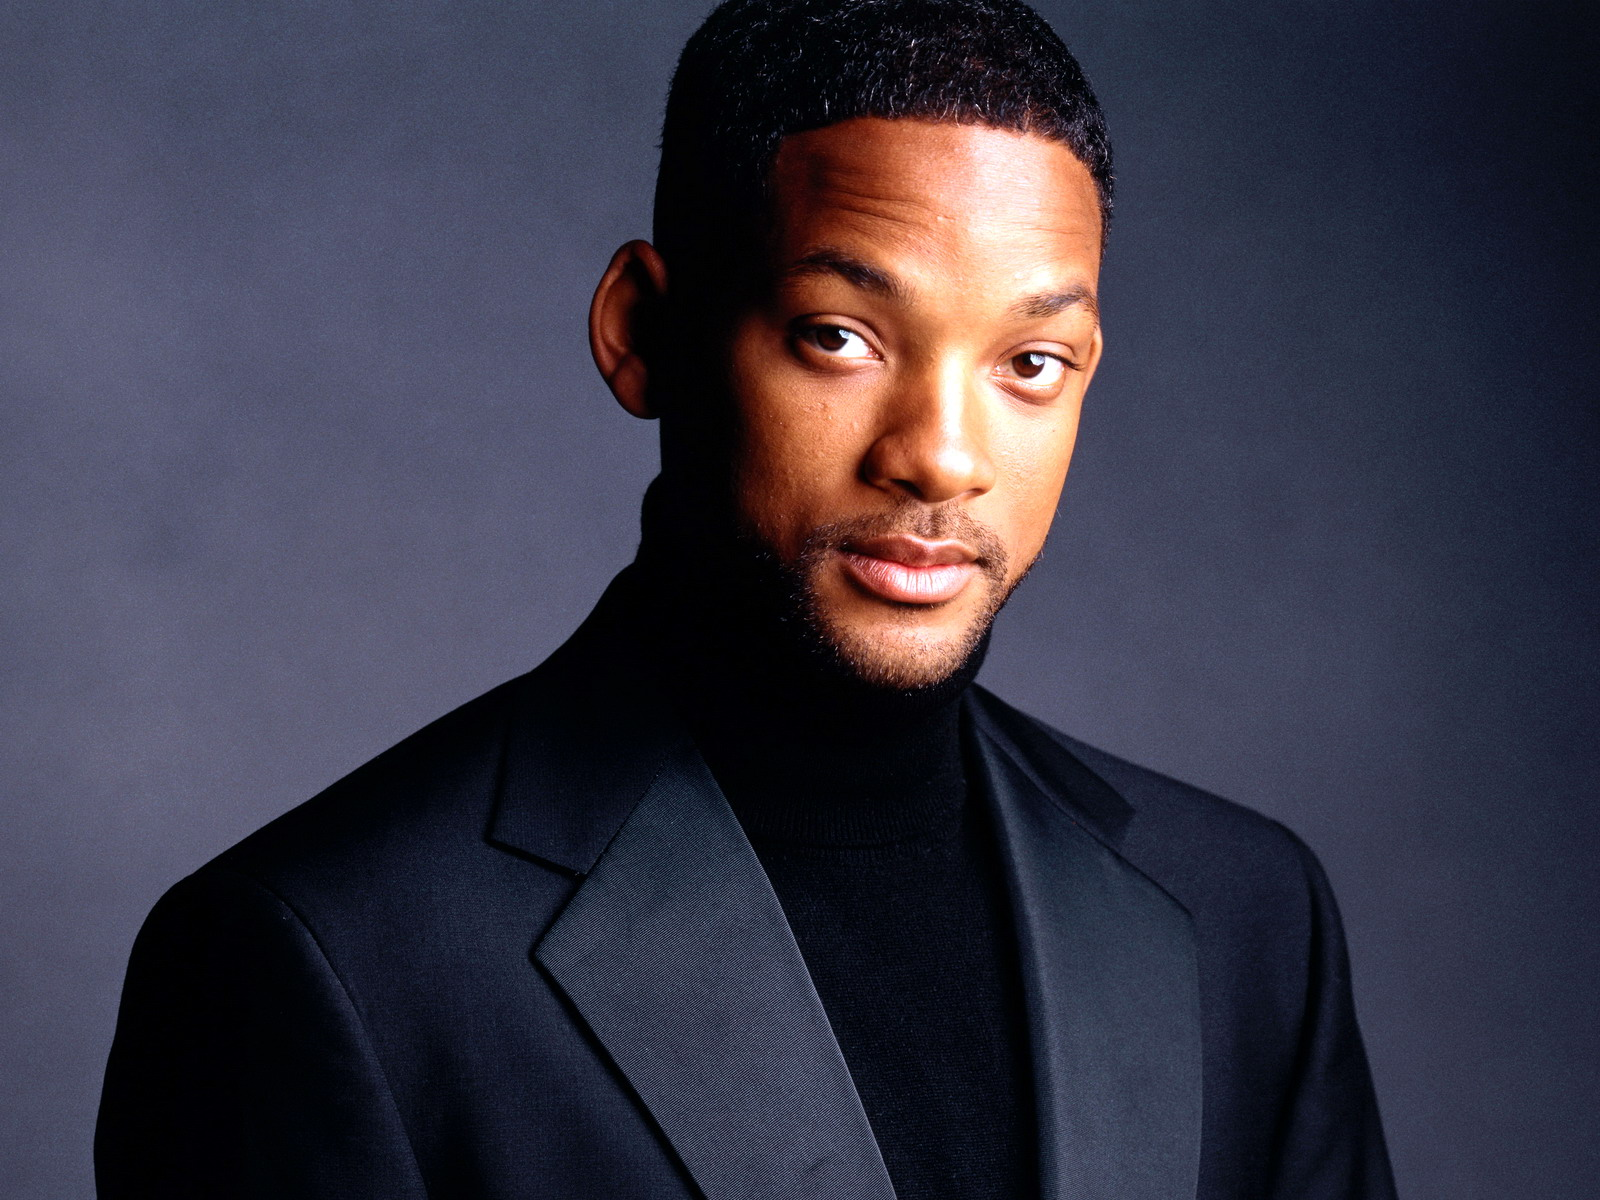 Will Smith Wallpapers High Resolution and Quality Download 1600x1200